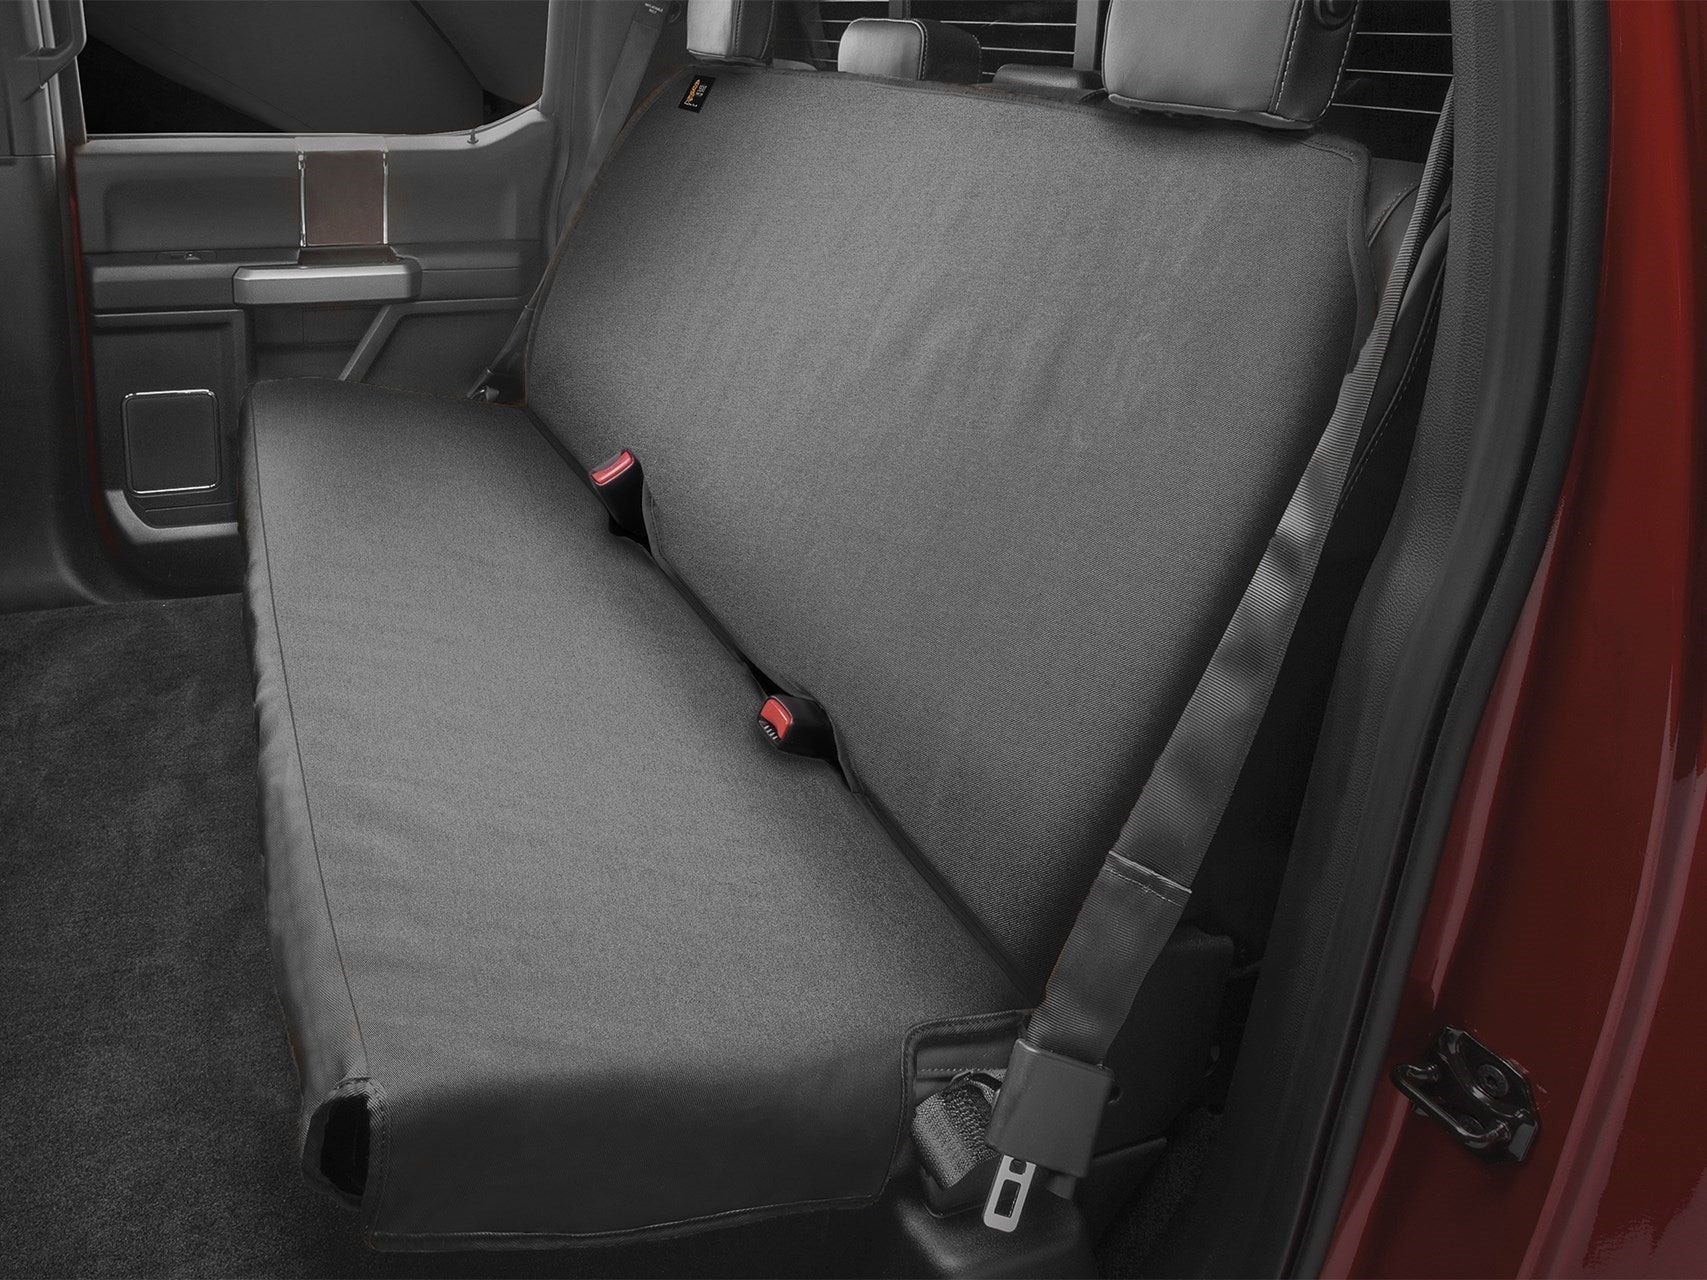 Outstanding Weathertech 2015 2018 Ford F150 Rear Seat Protector De2021 Squirreltailoven Fun Painted Chair Ideas Images Squirreltailovenorg